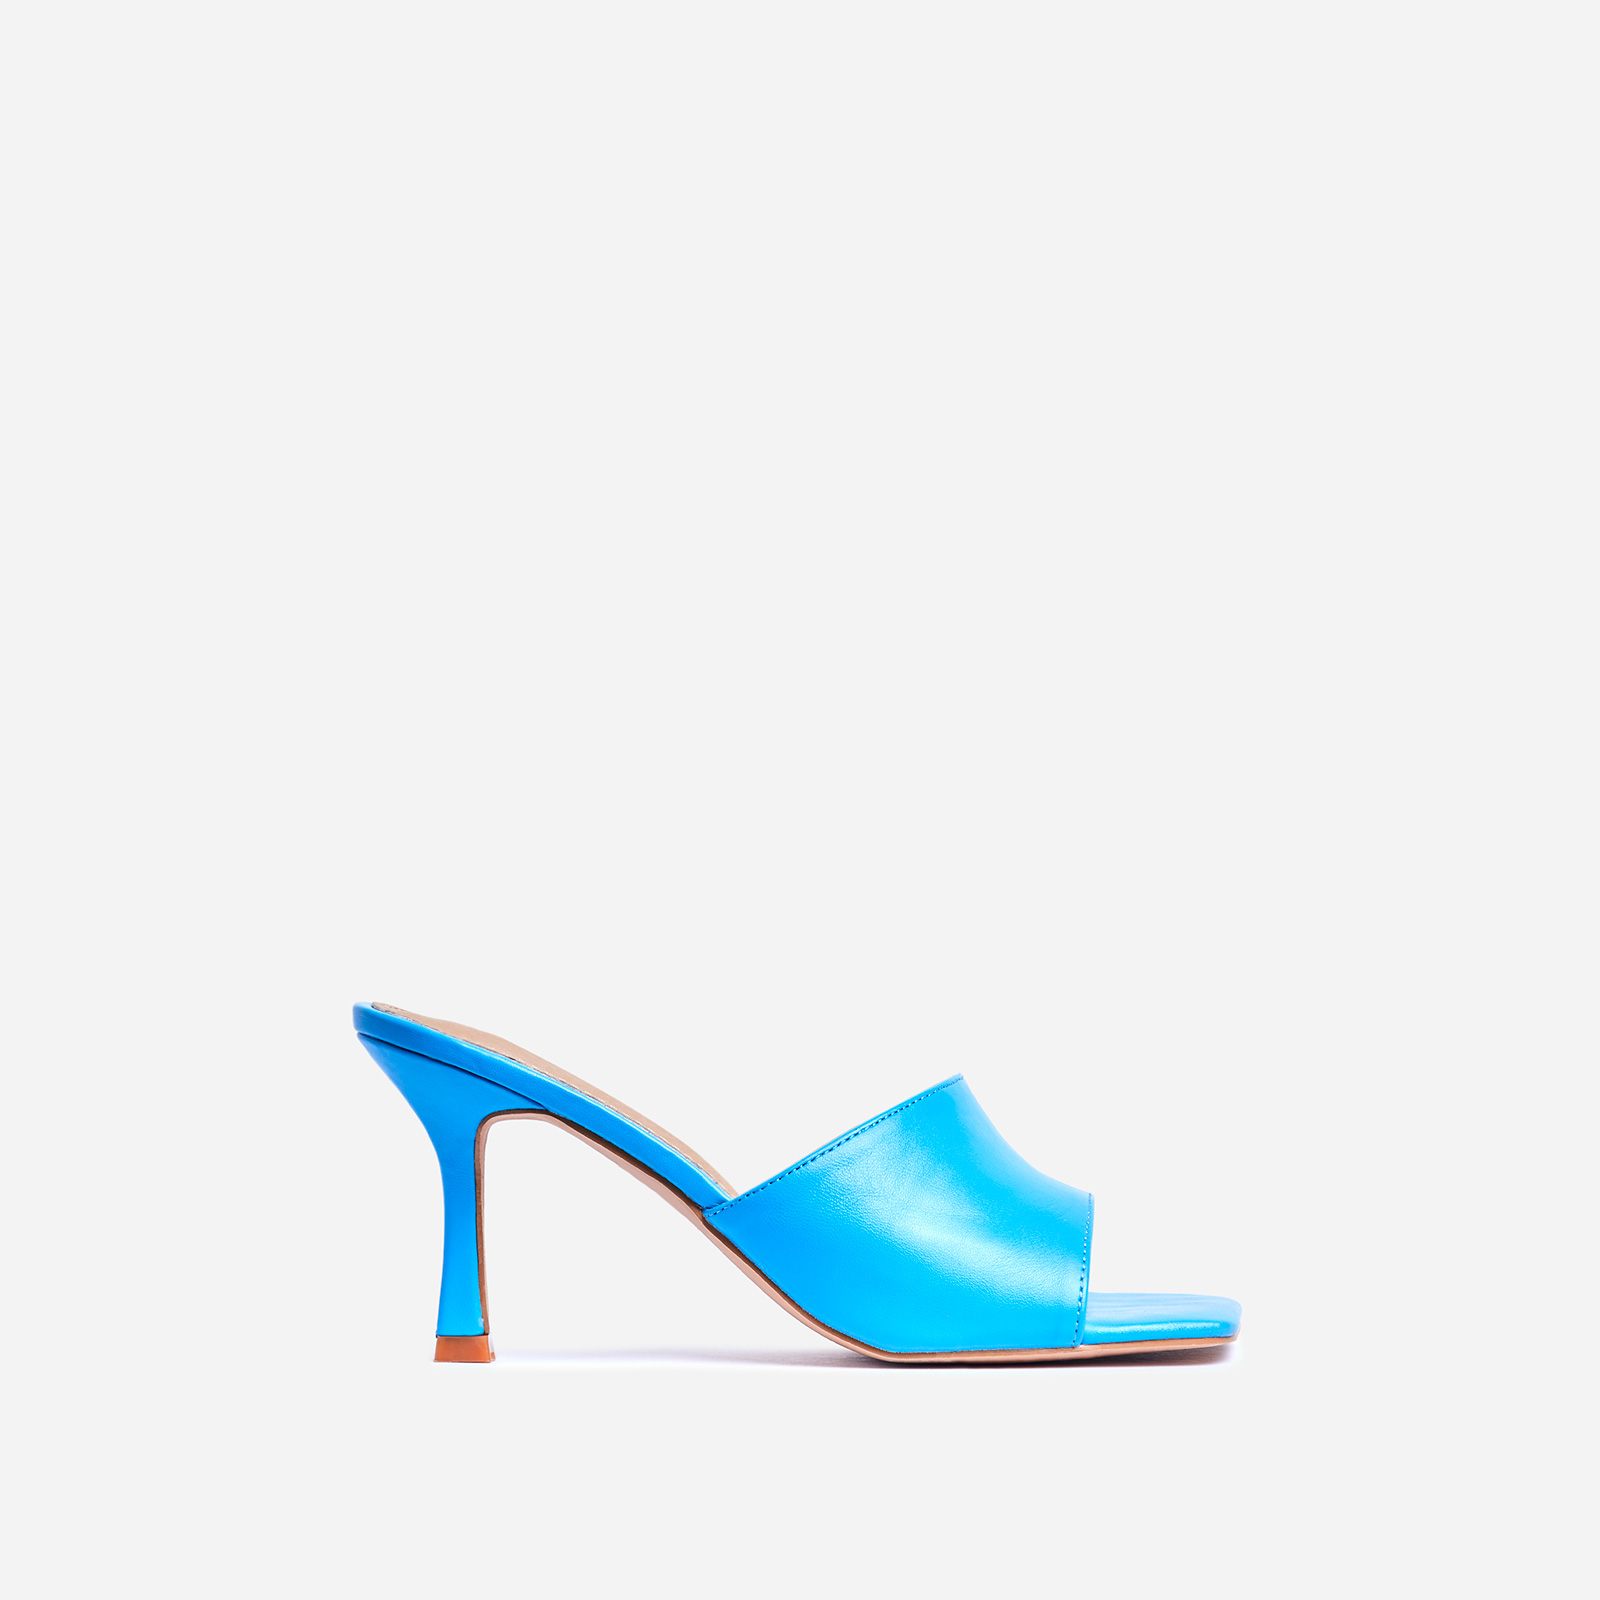 Hilton Square Peep Toe Kitten Heel Mule In Blue Faux Leather